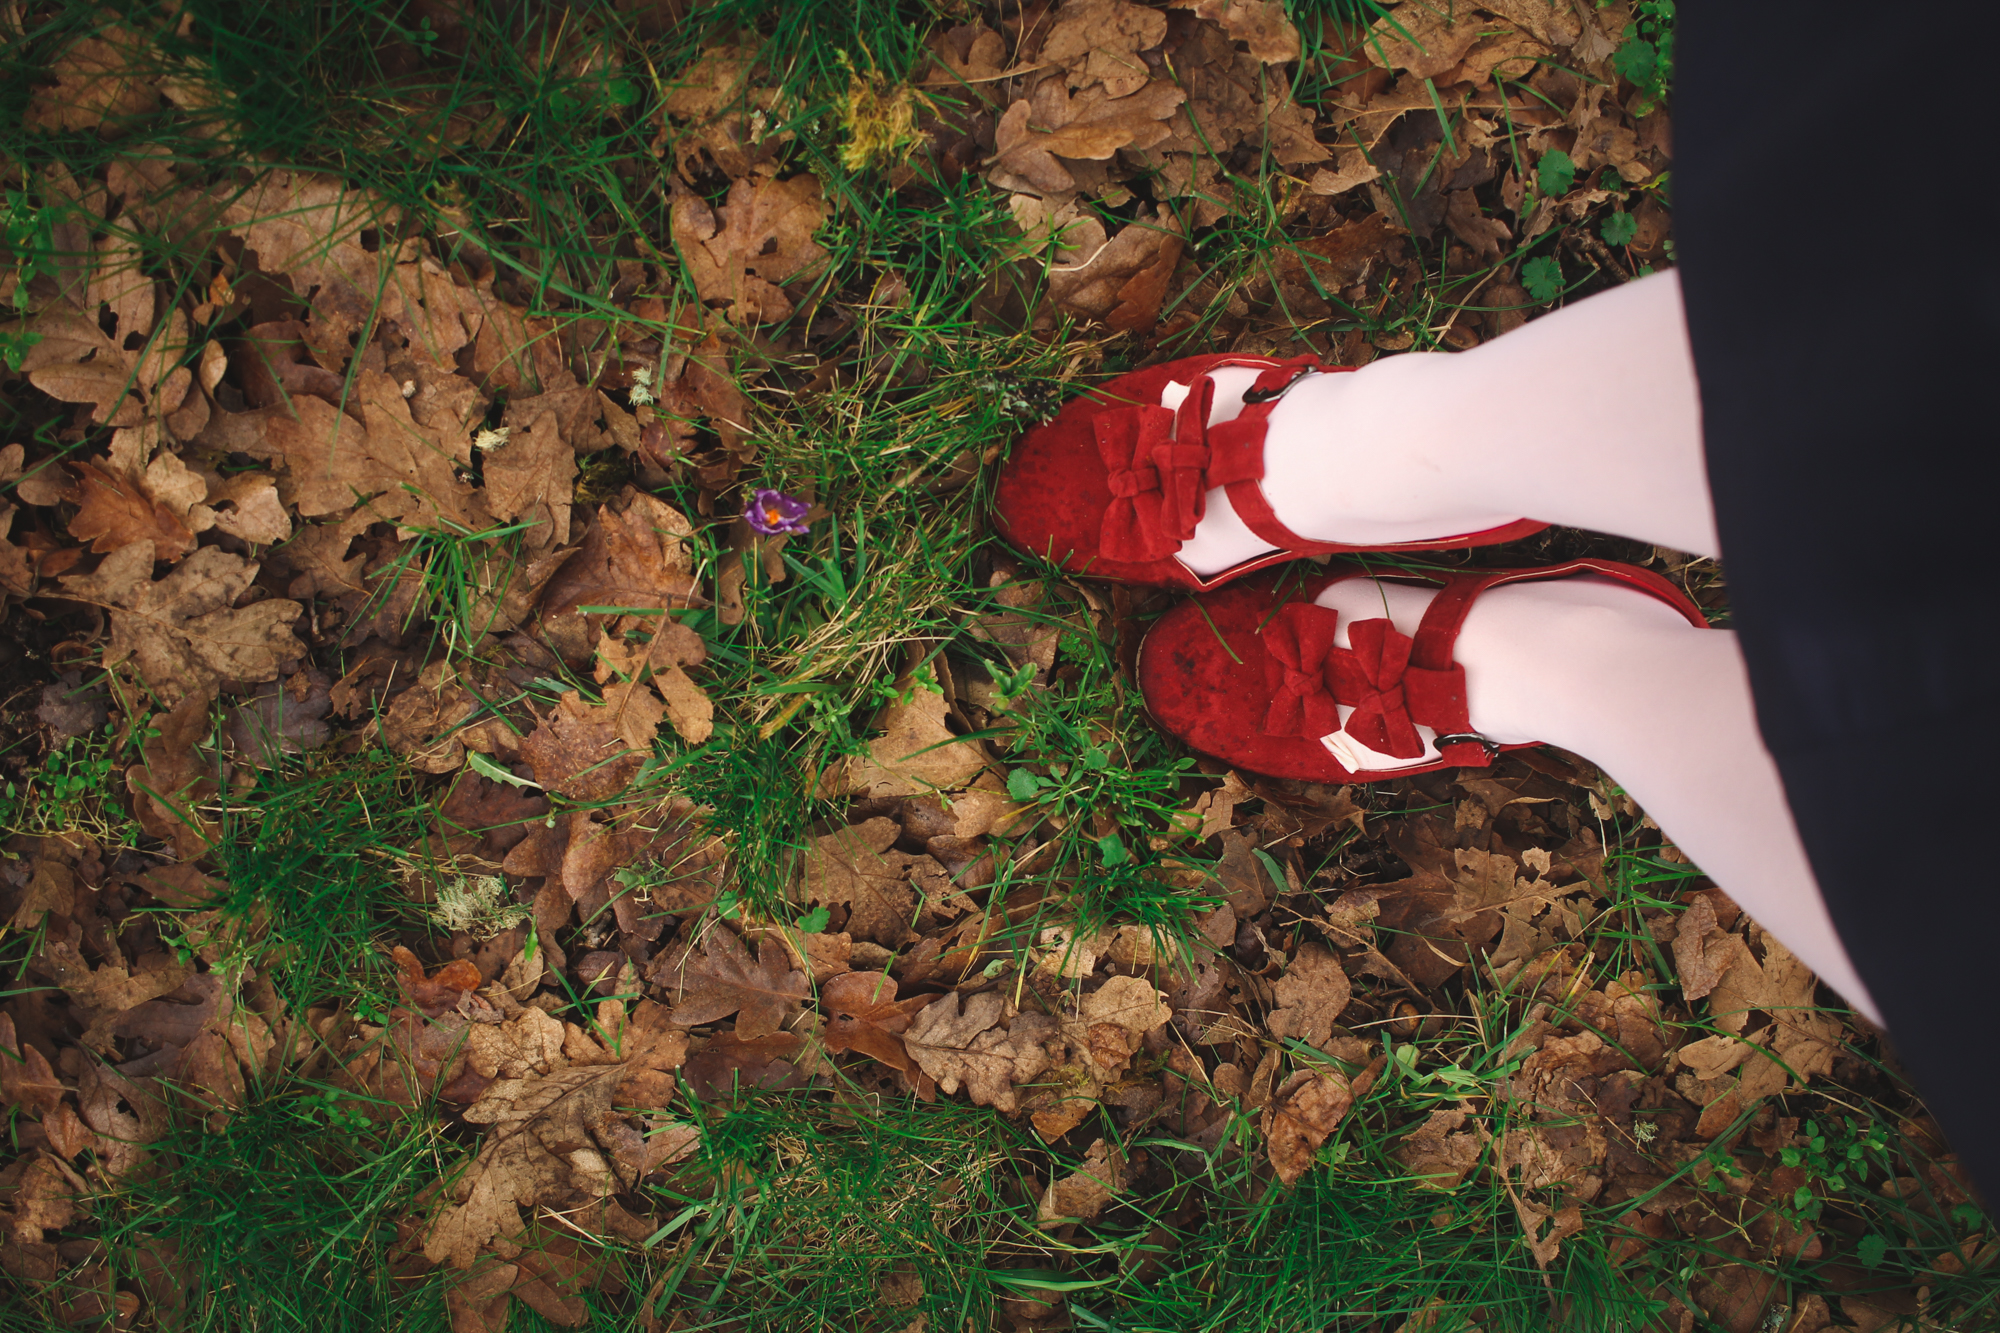 Red lolita style shoes and pastel pink tights